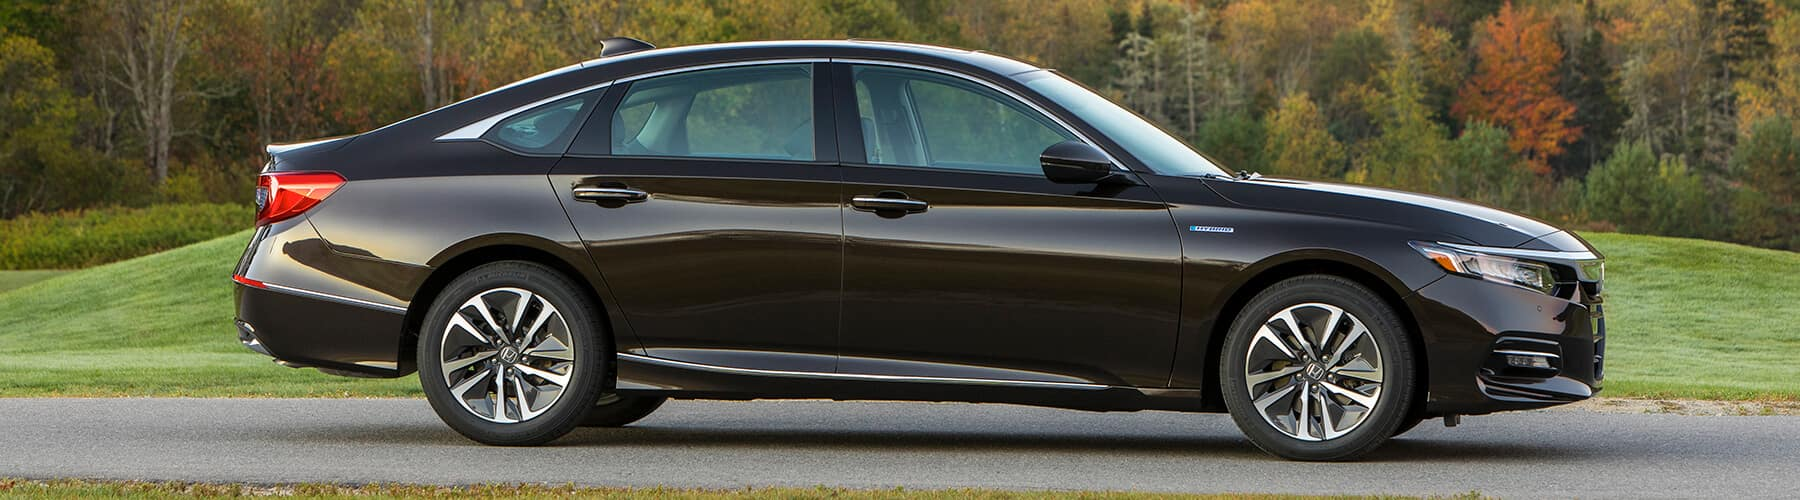 2020 Honda Accord Hybrid Slider